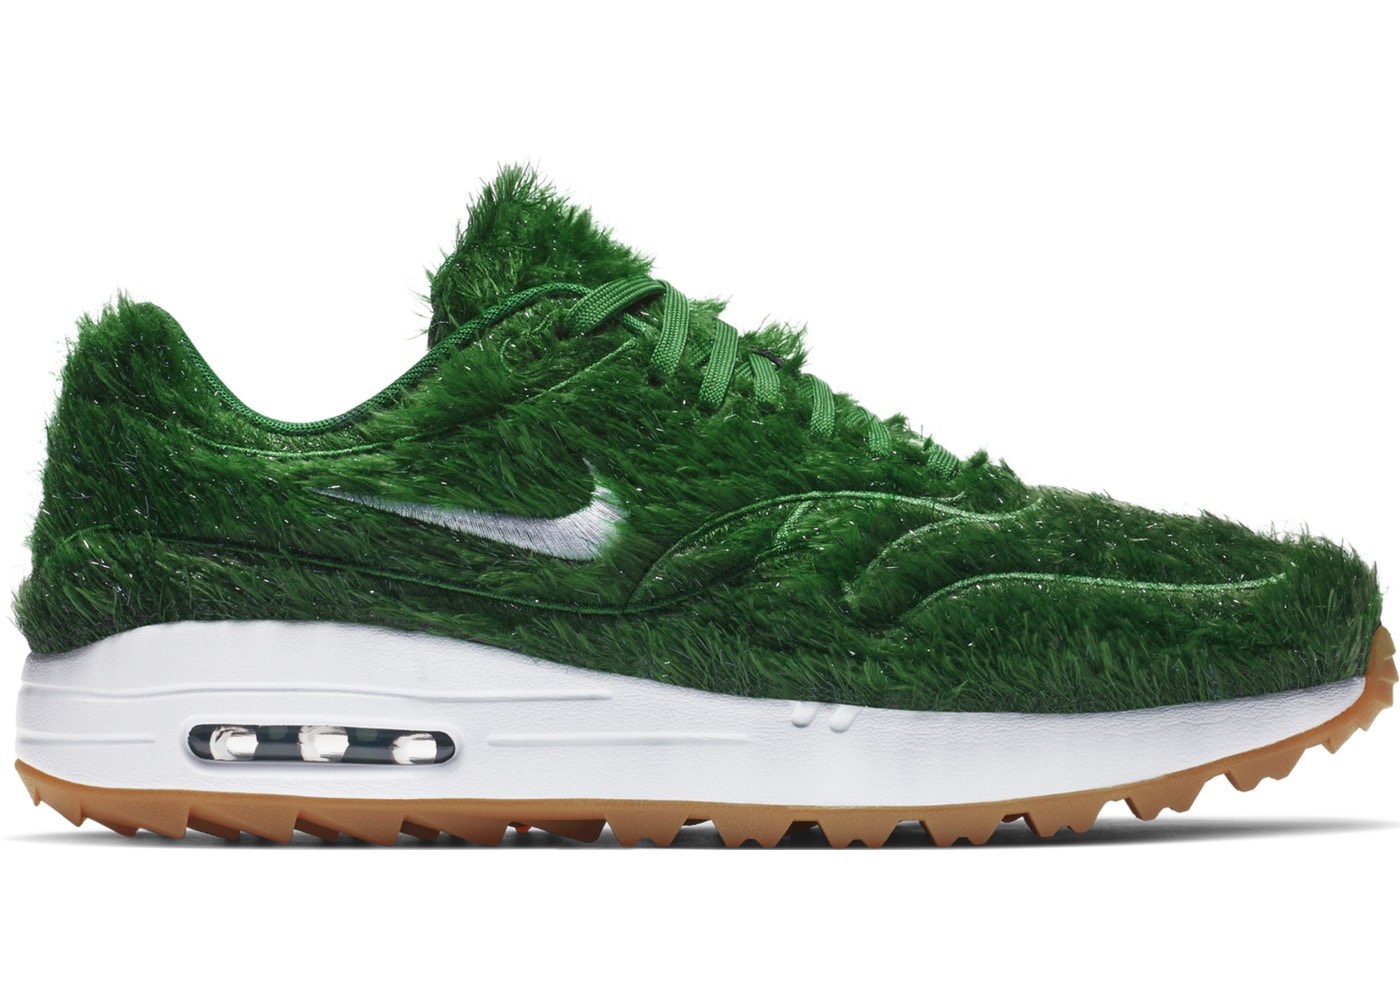 02ae49e0 Air Max 1 Golf Grass - BQ4804-300